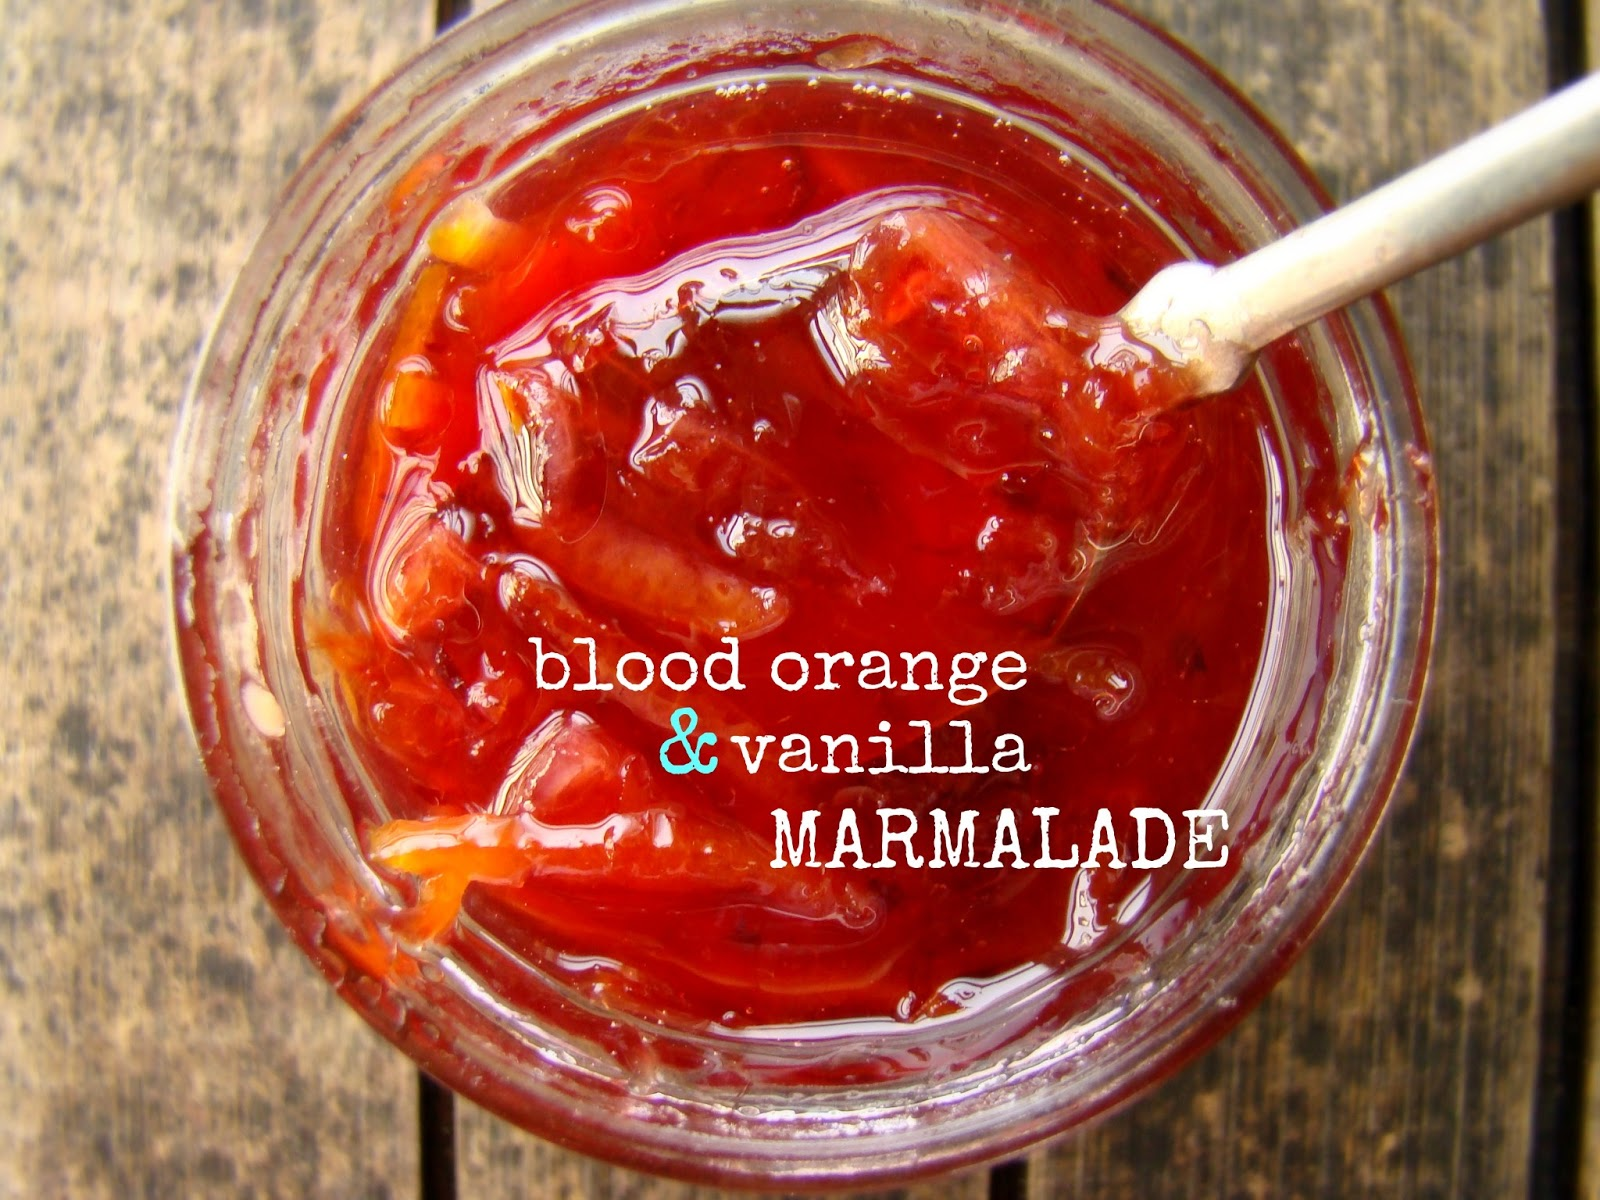 Family Feedbag: Blood orange & vanilla marmalade